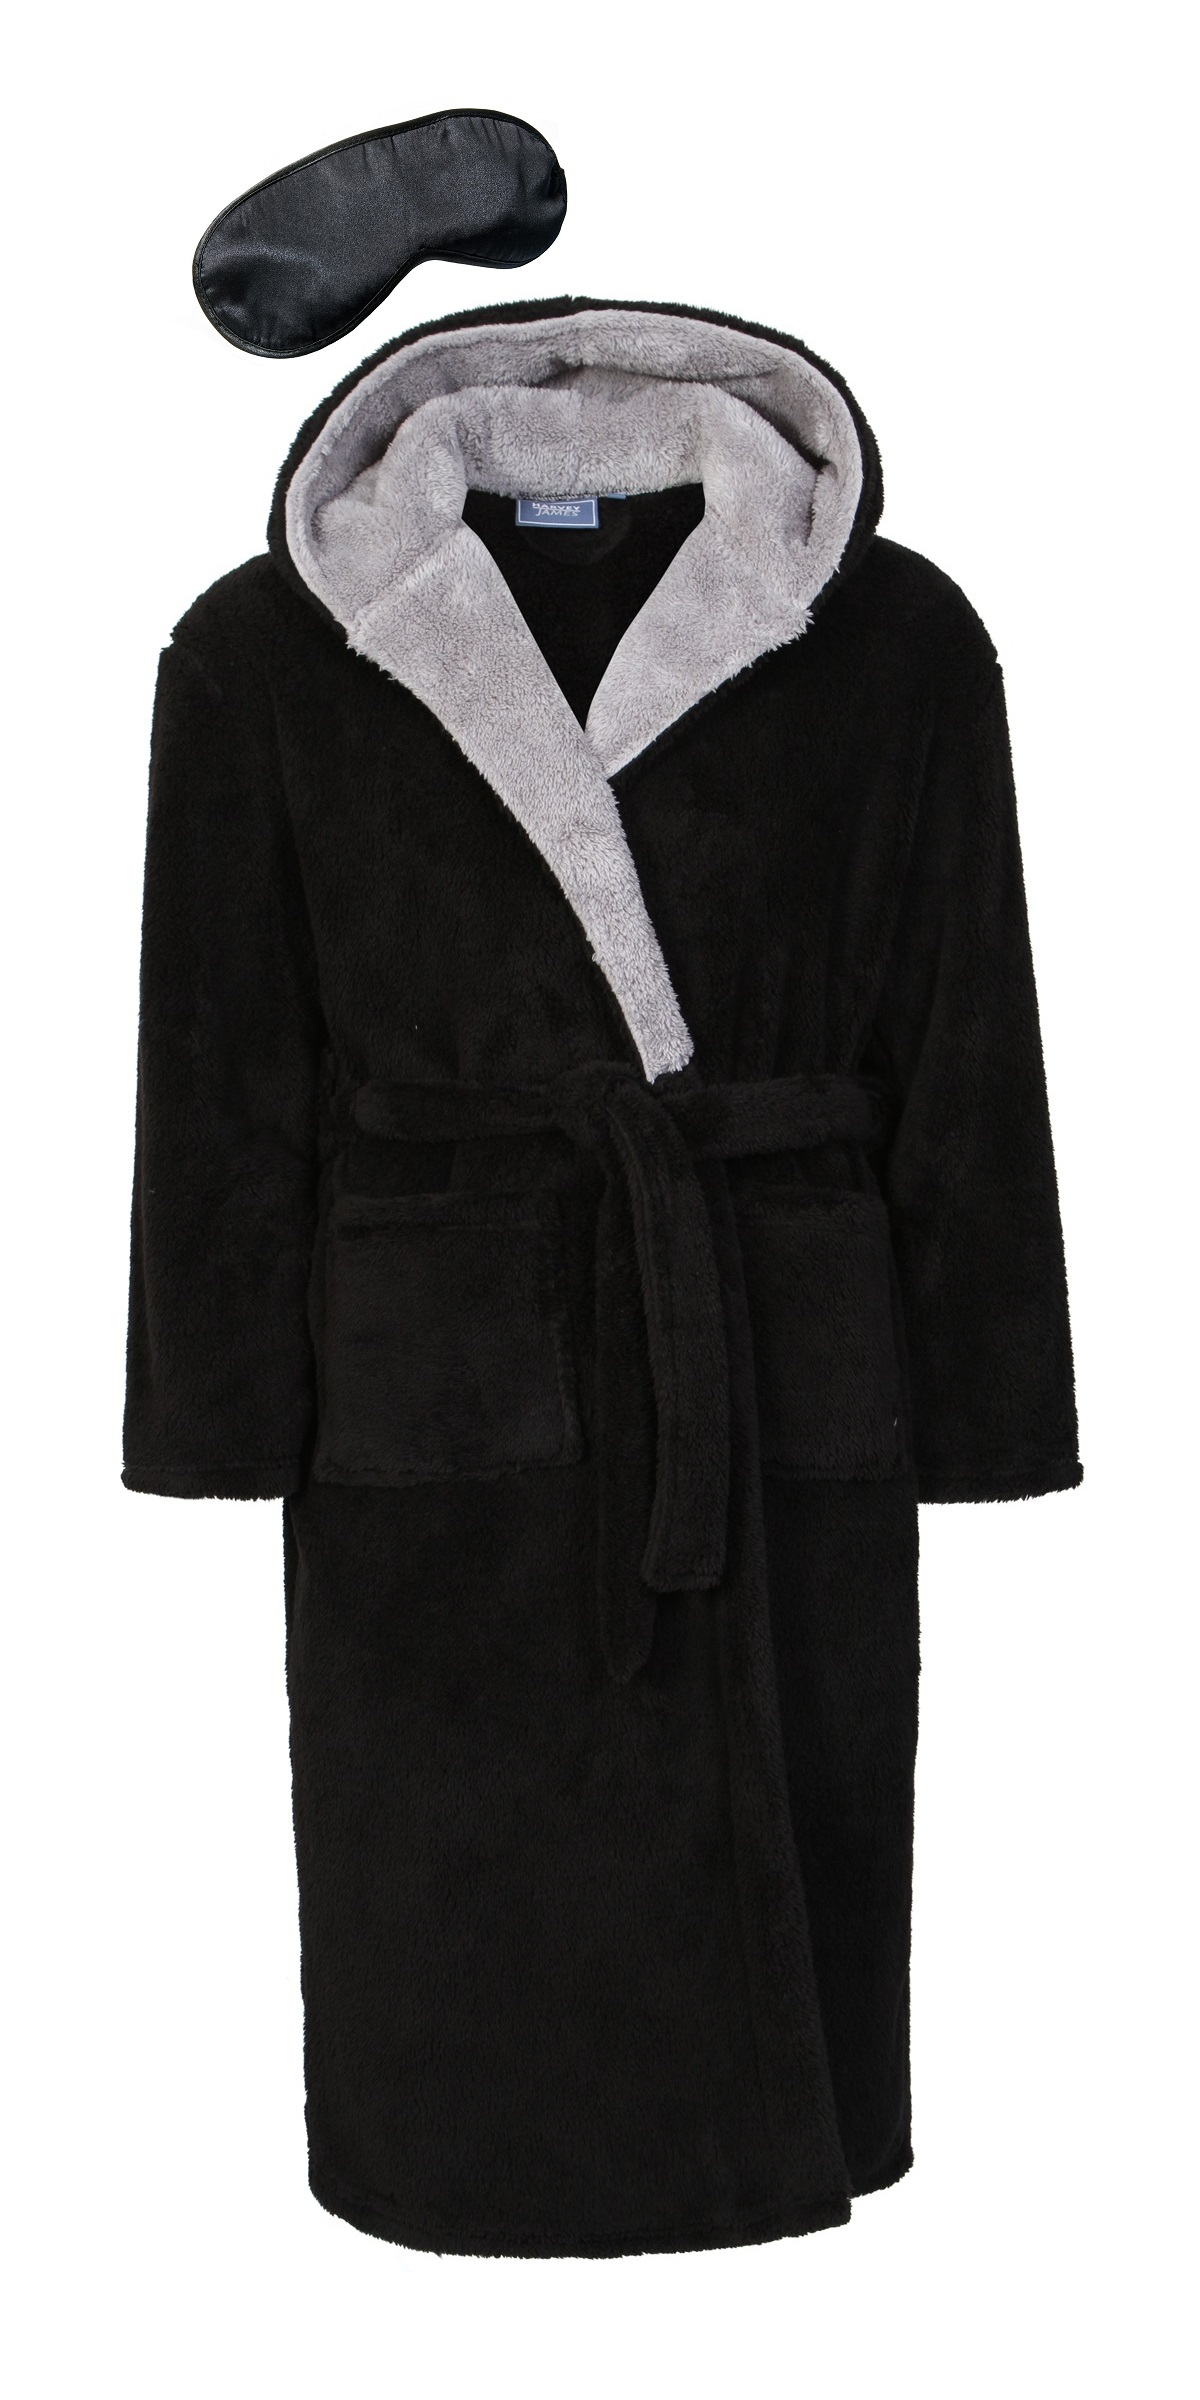 harvey james men 39 s hooded soft fleece robe dressing gown with eye mask ebay. Black Bedroom Furniture Sets. Home Design Ideas